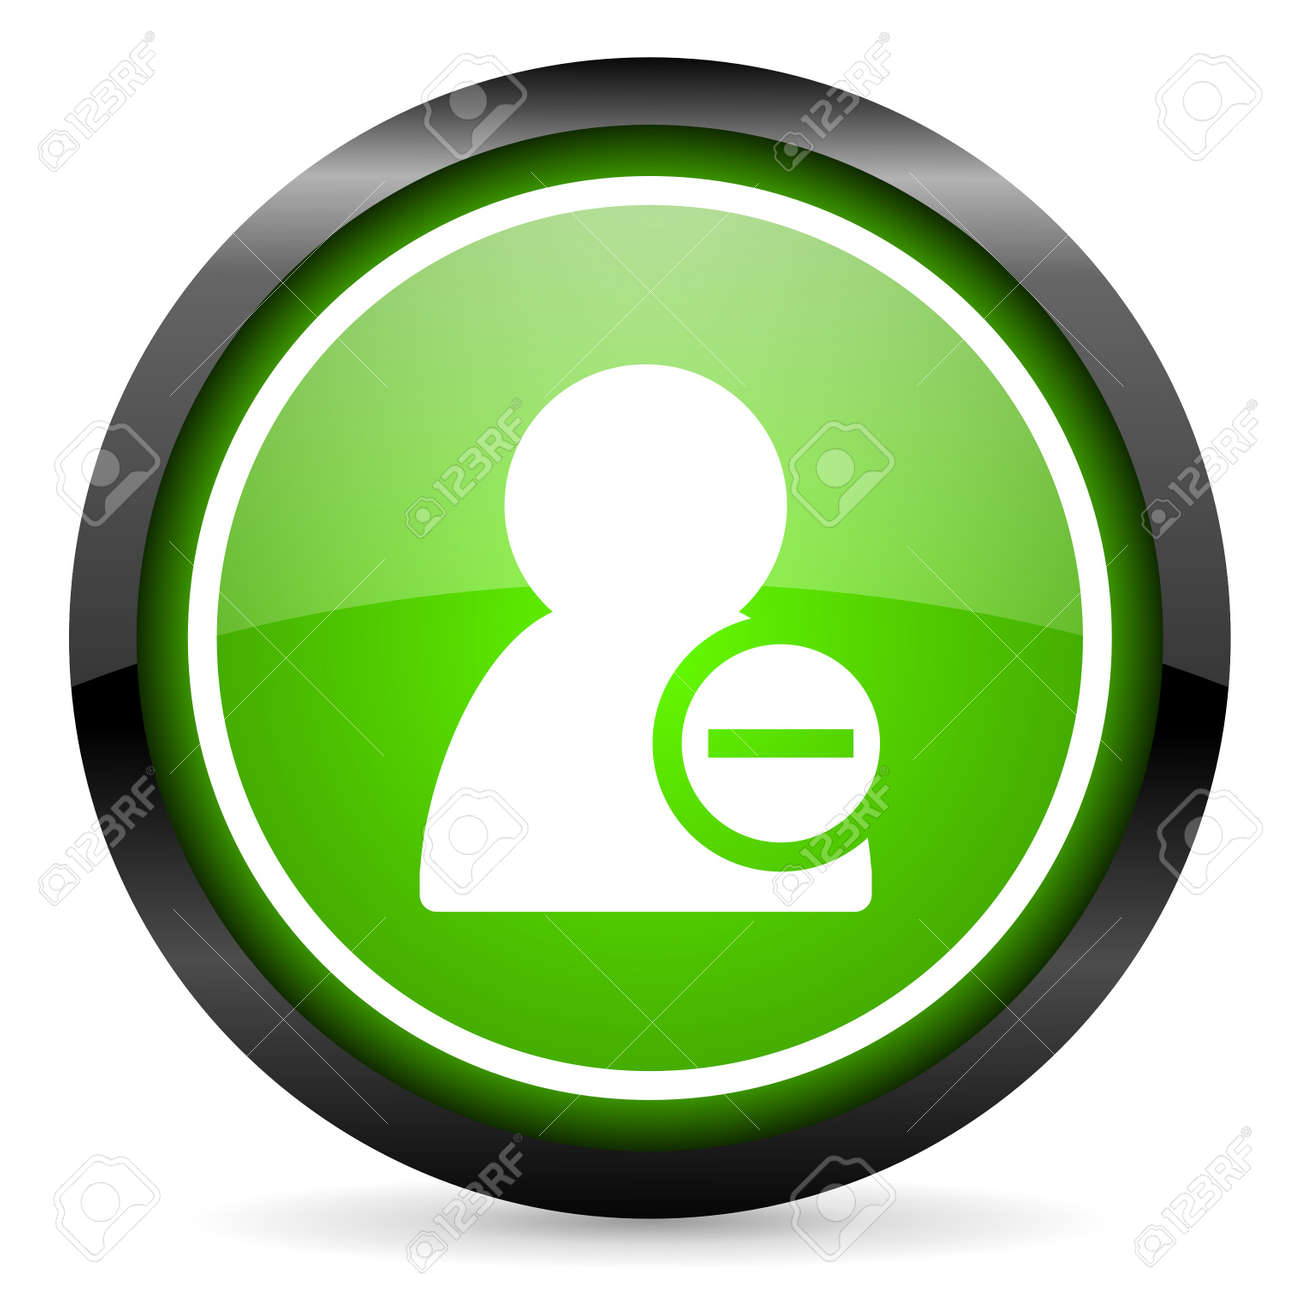 remove contact green glossy icon on white background Stock Photo - 16736733